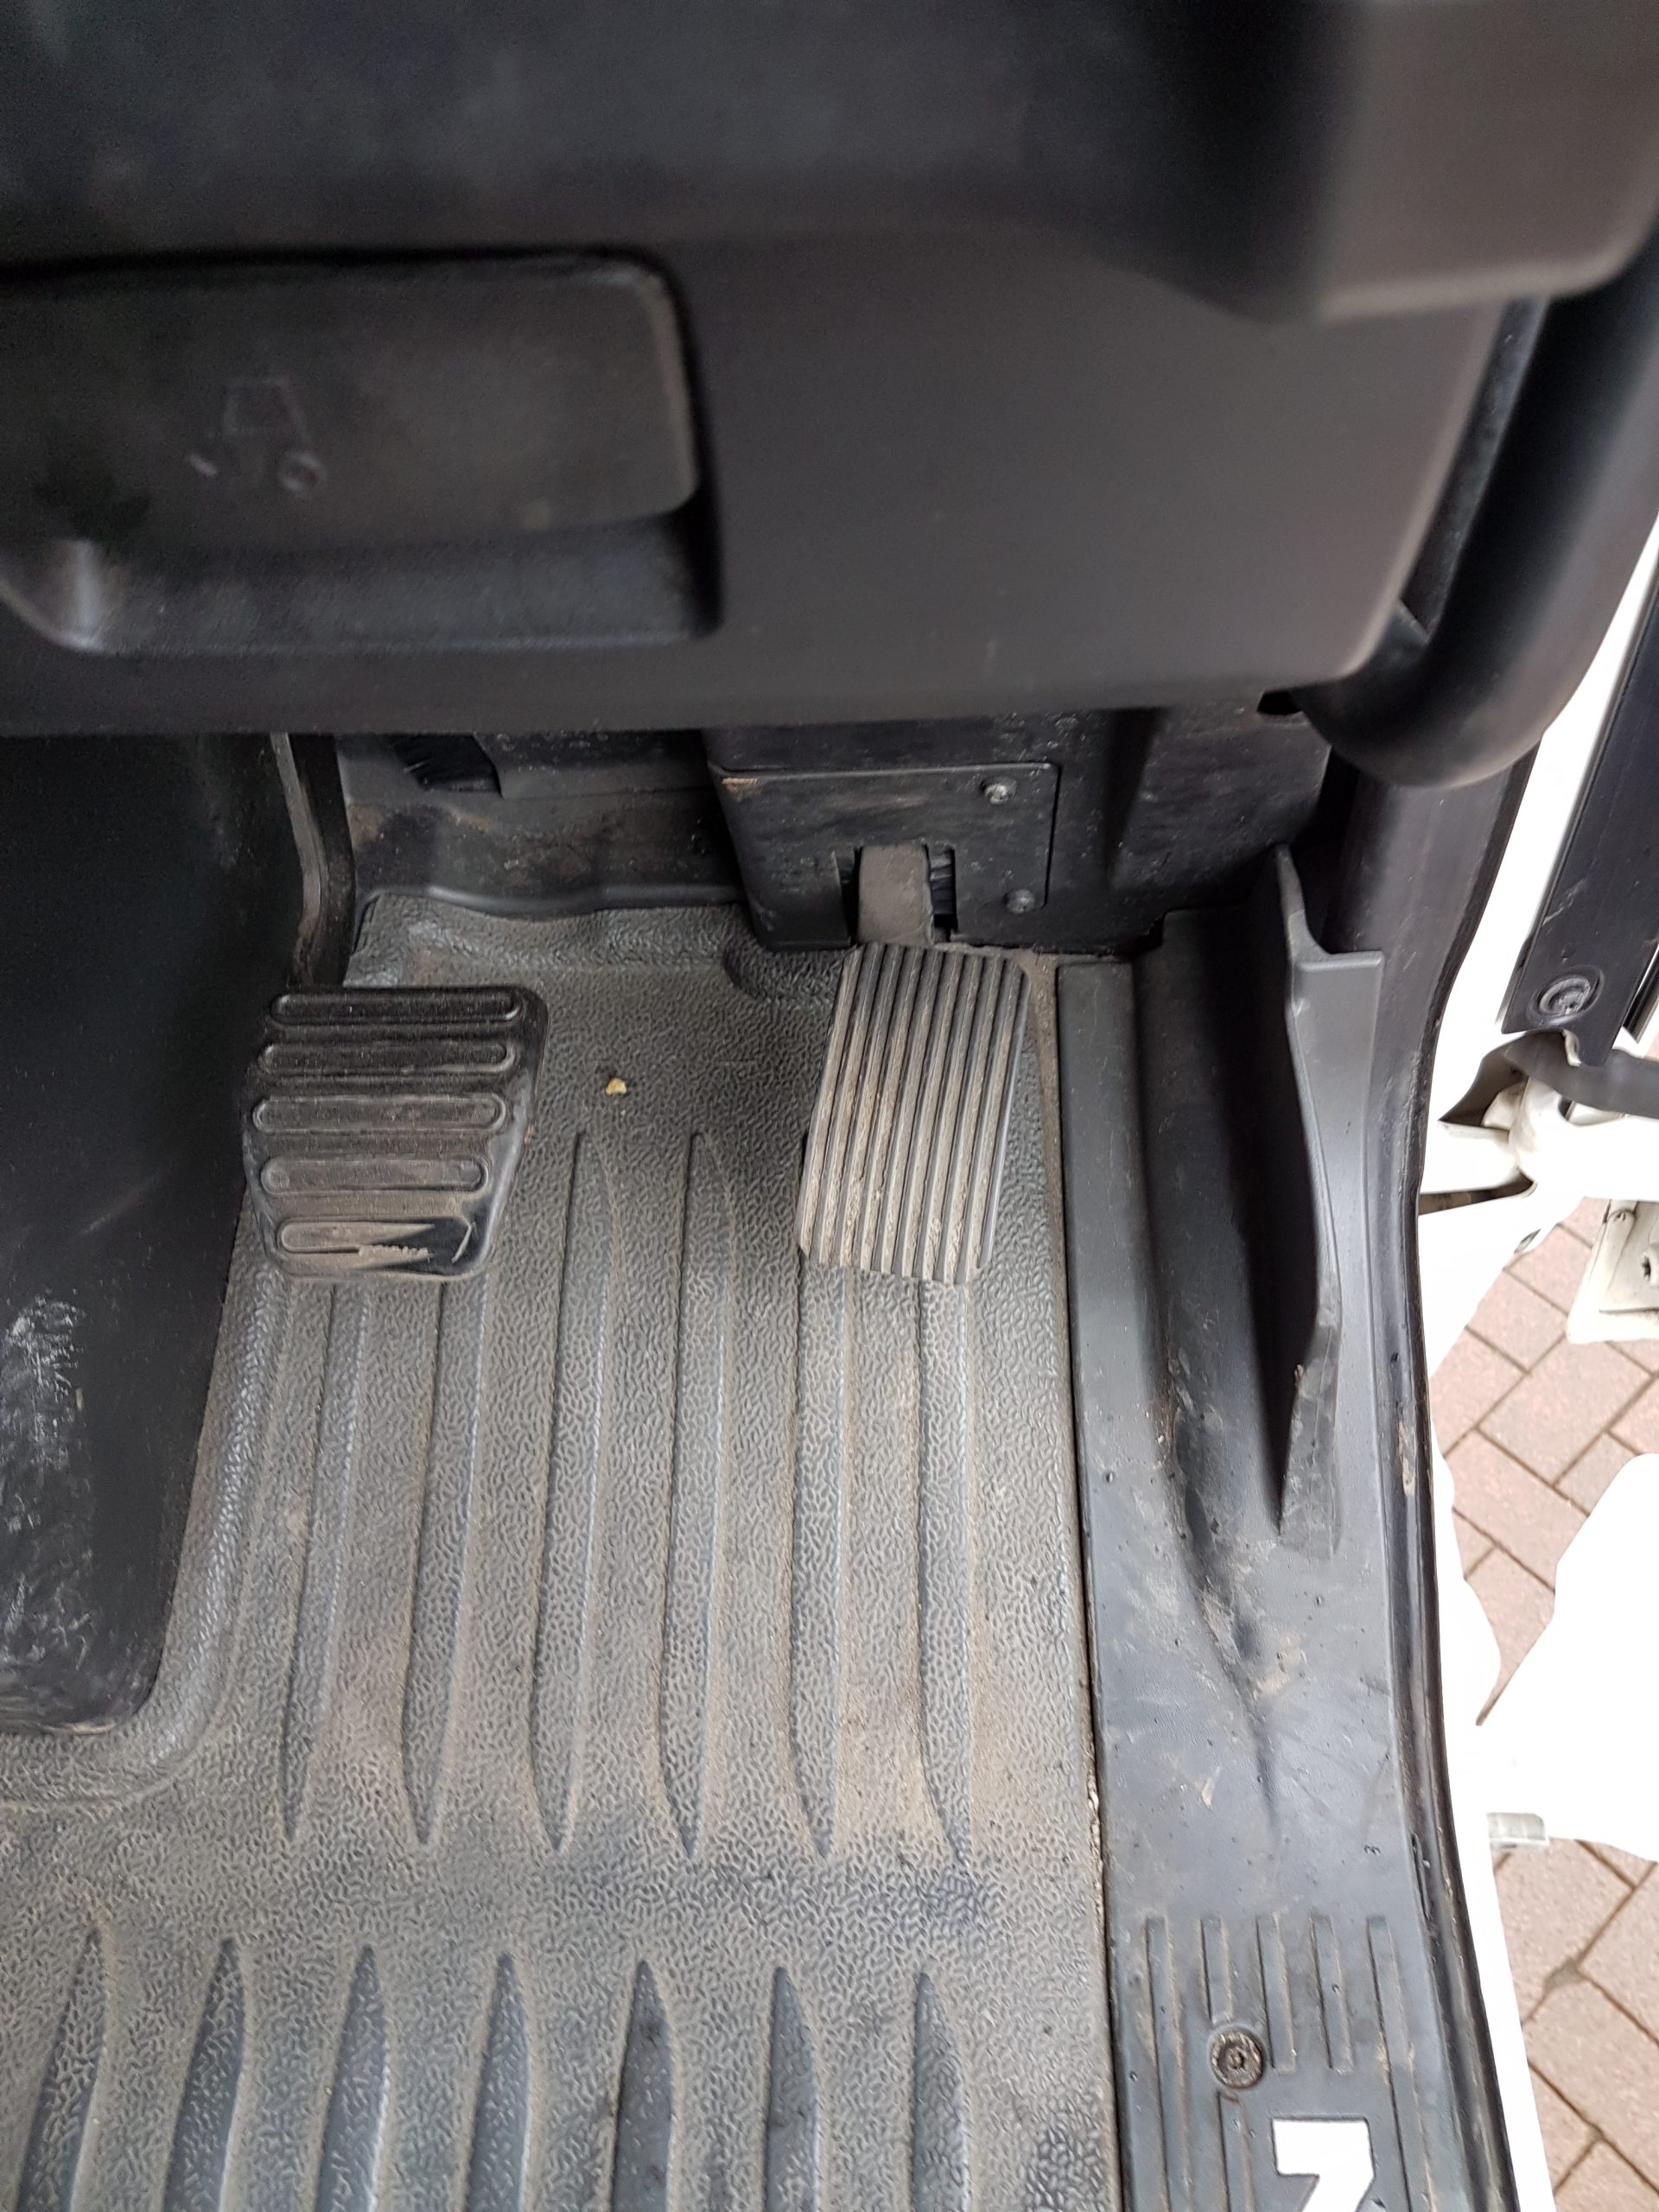 Lorry pedals